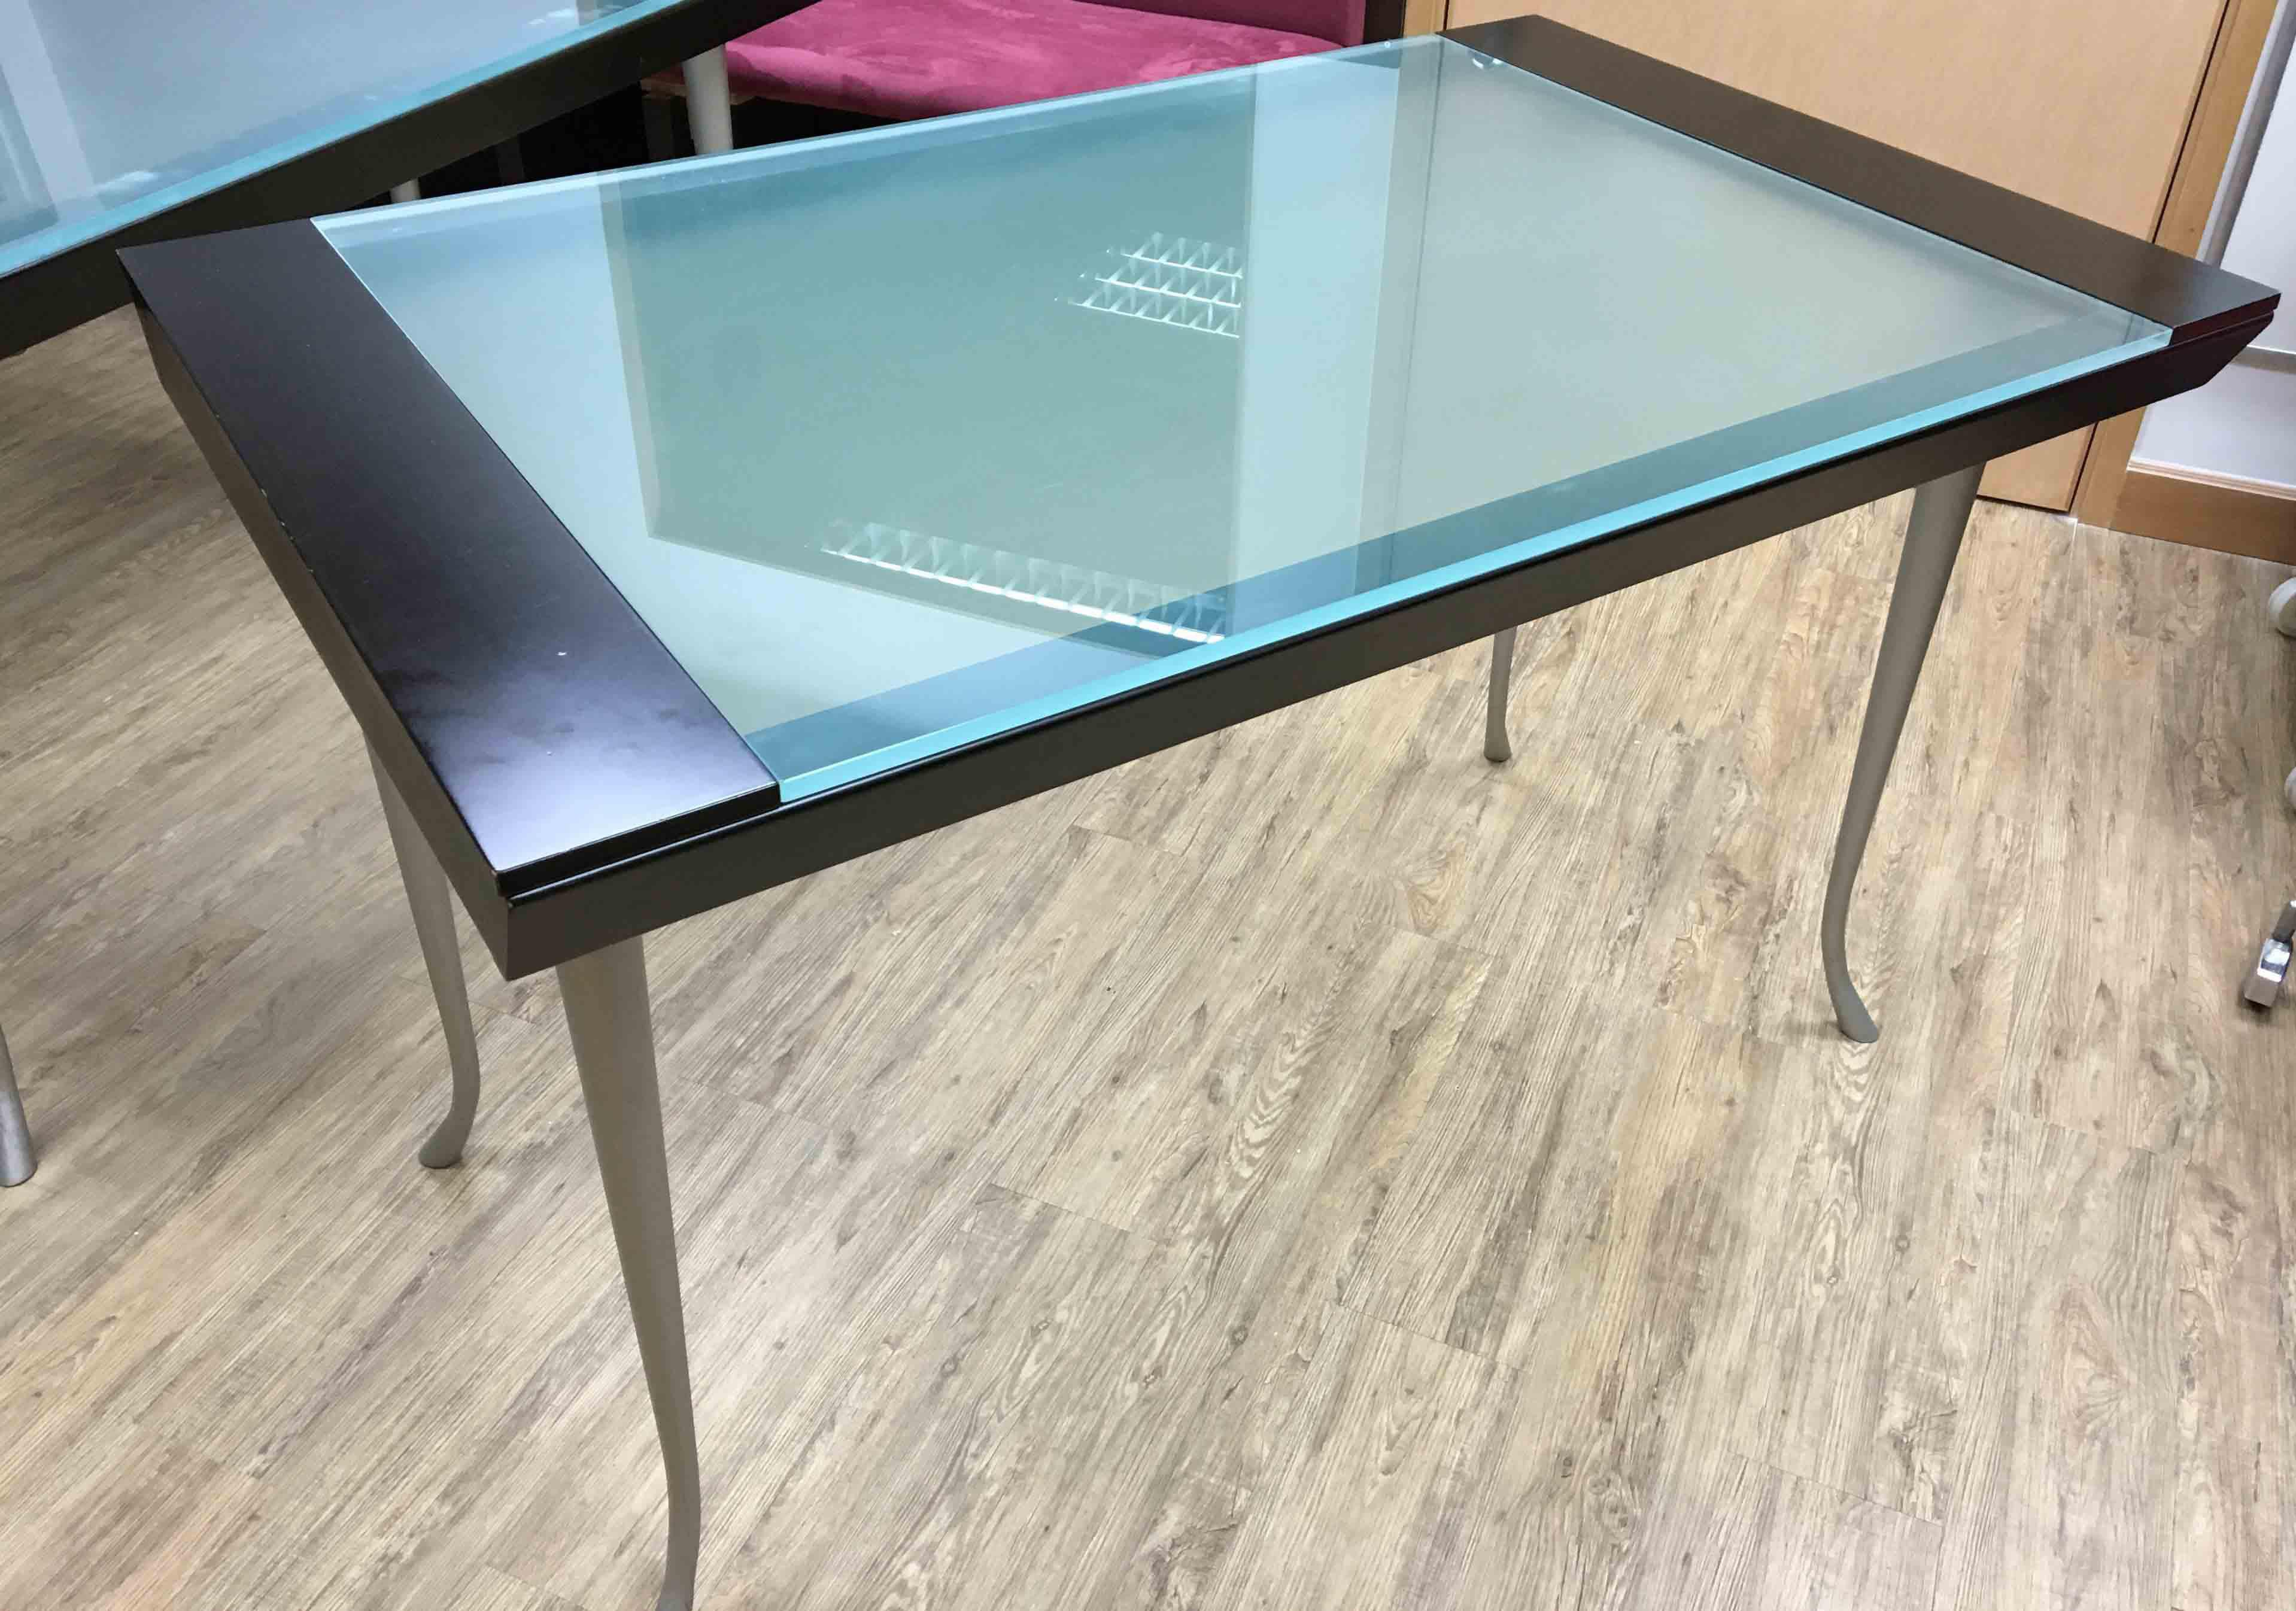 Tempered glass working/ dinning/ drawing table | Secondhand.hk